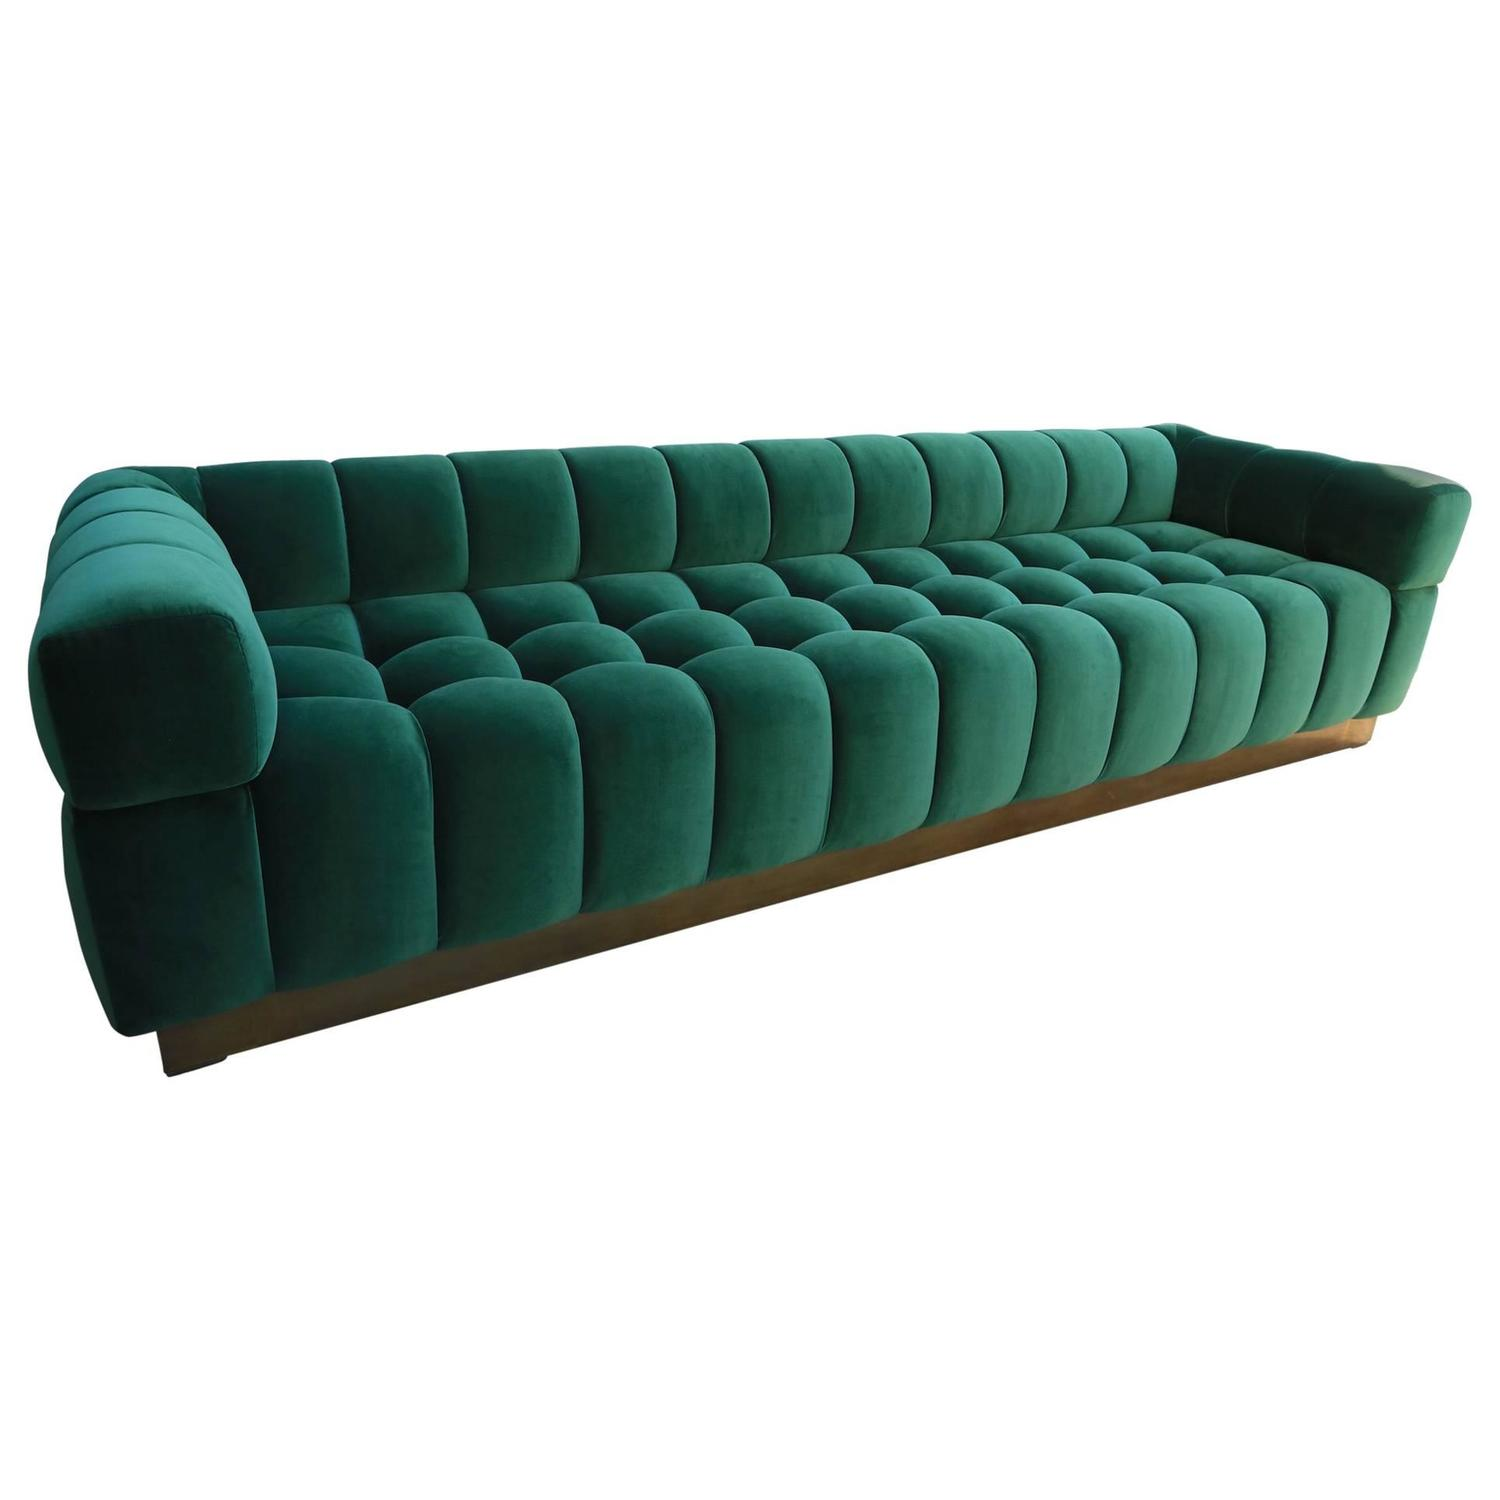 Modern Art Deco Curved Sofa in Hunter Velvet with Brass Base For